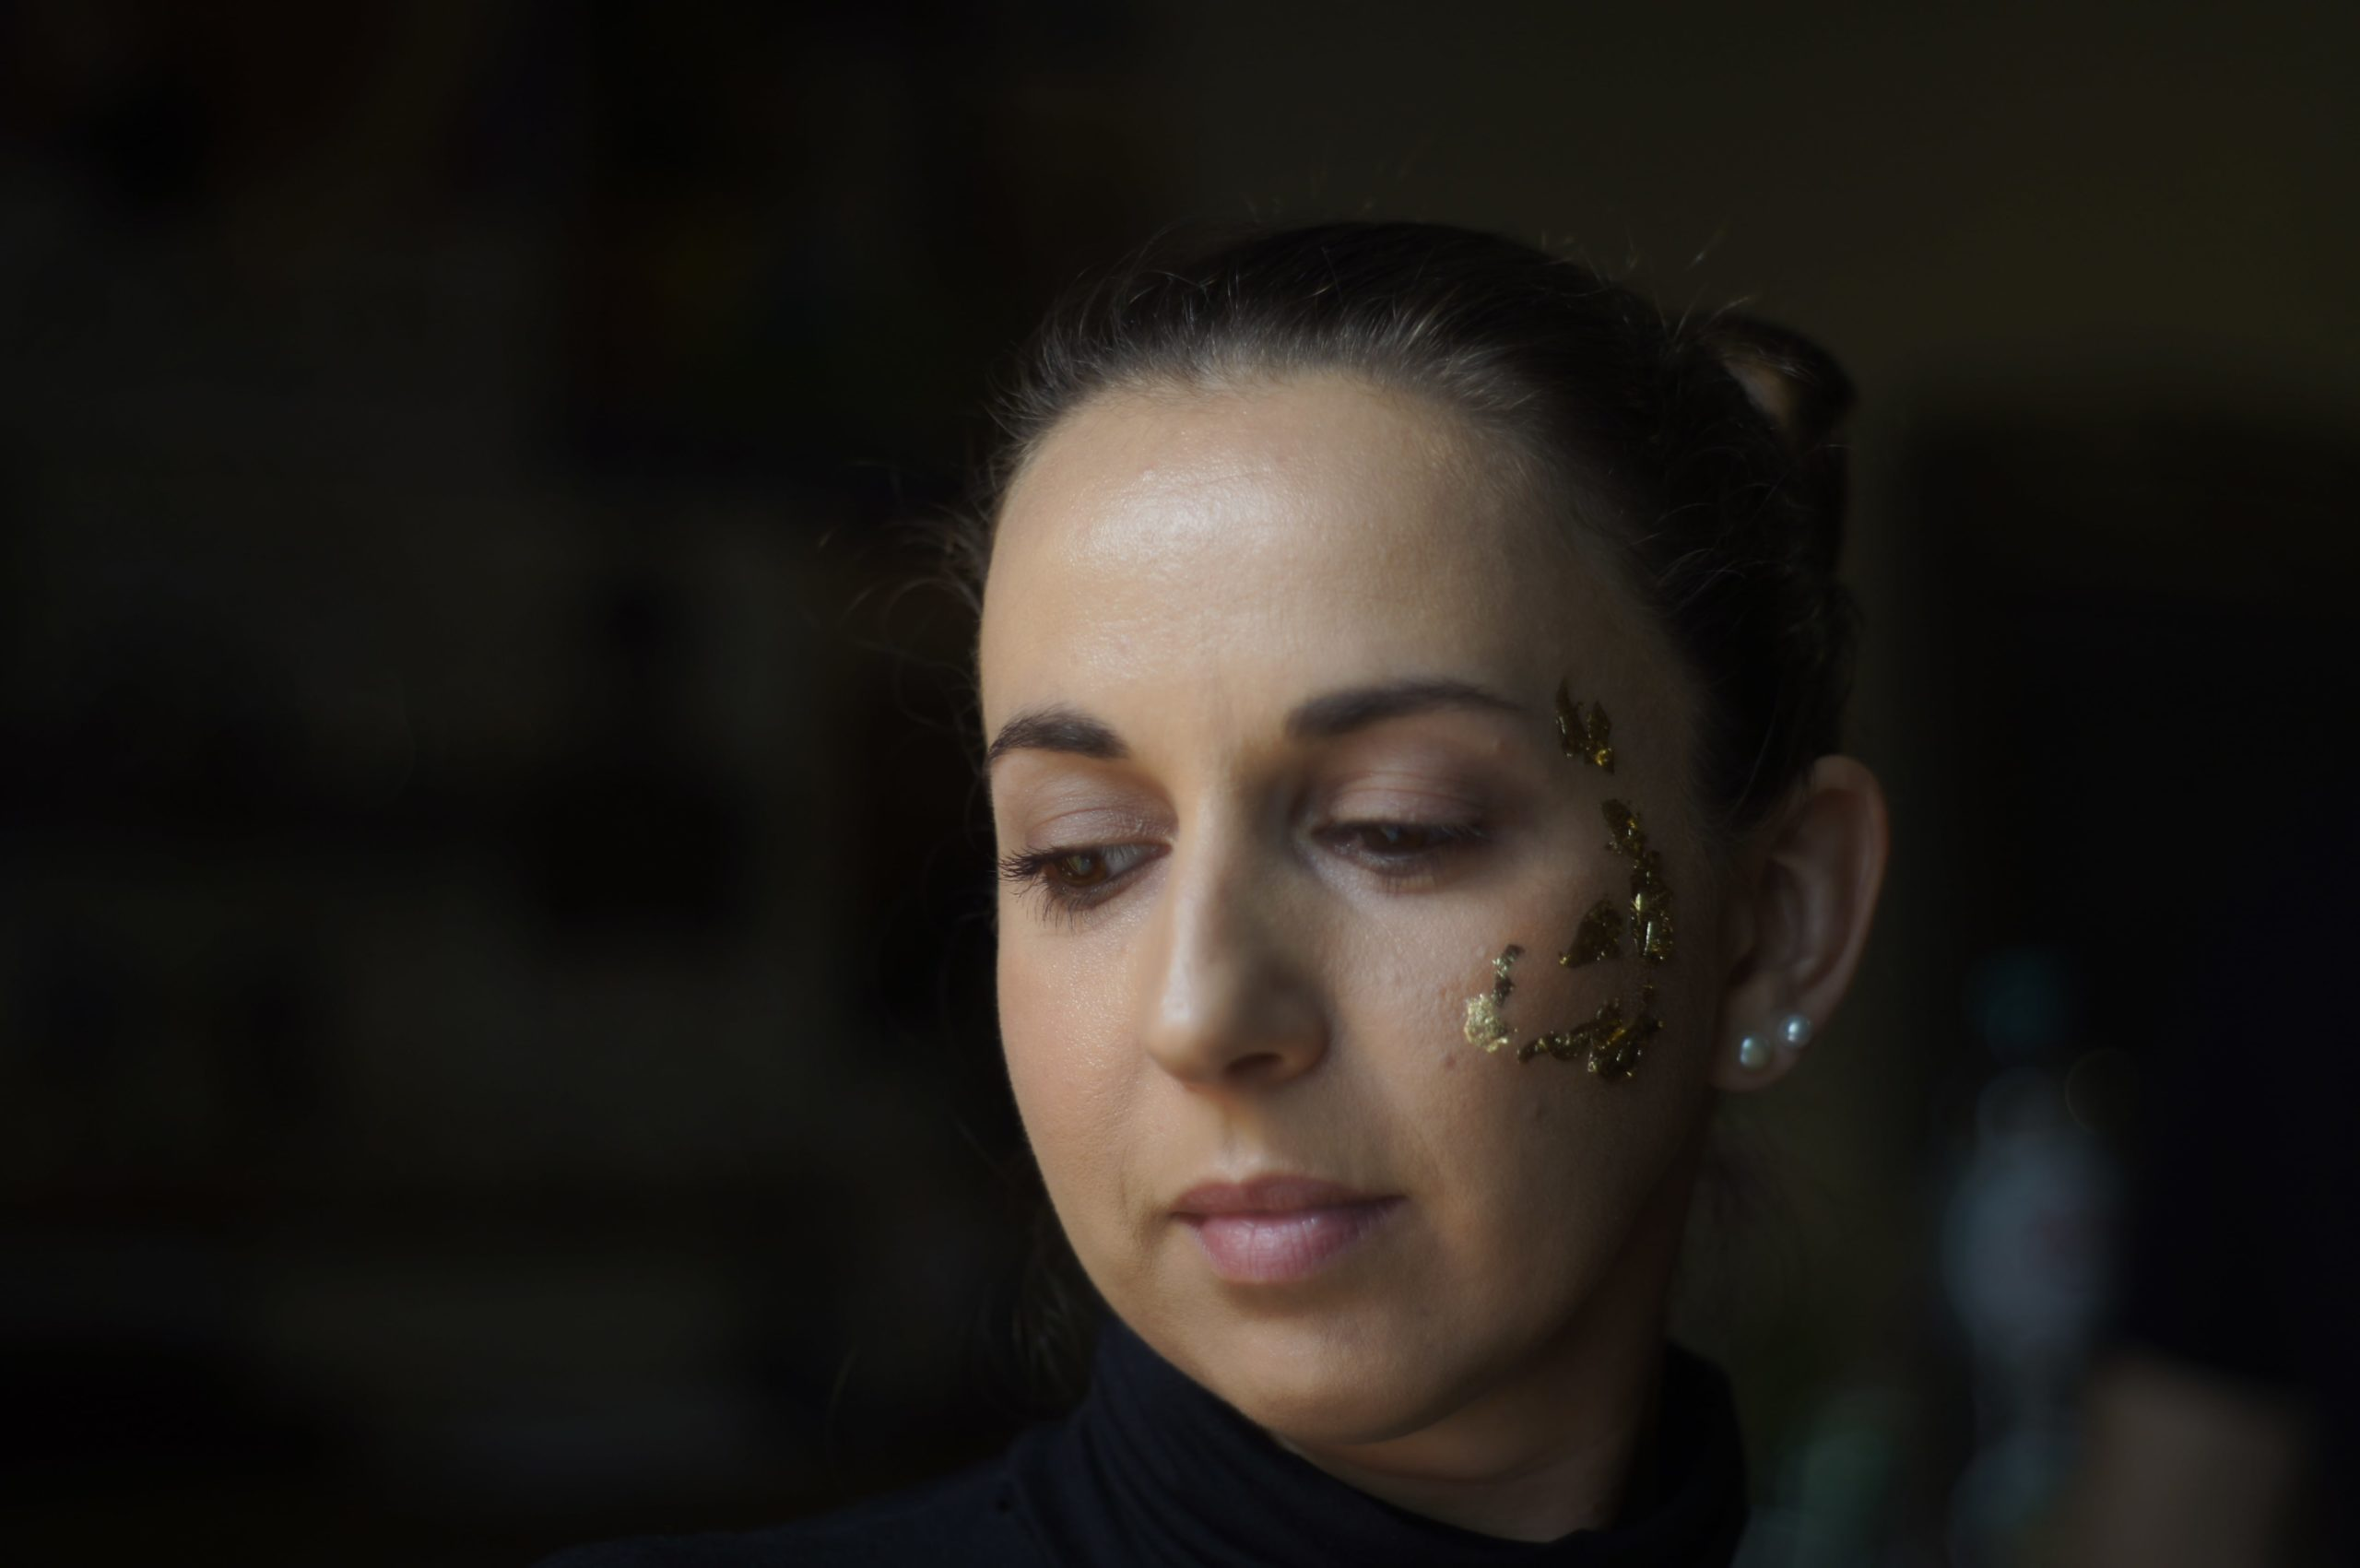 closeup on a woman with dark brown hair and brown eyes, looking down. Golden flakes cover her left cheek and temple